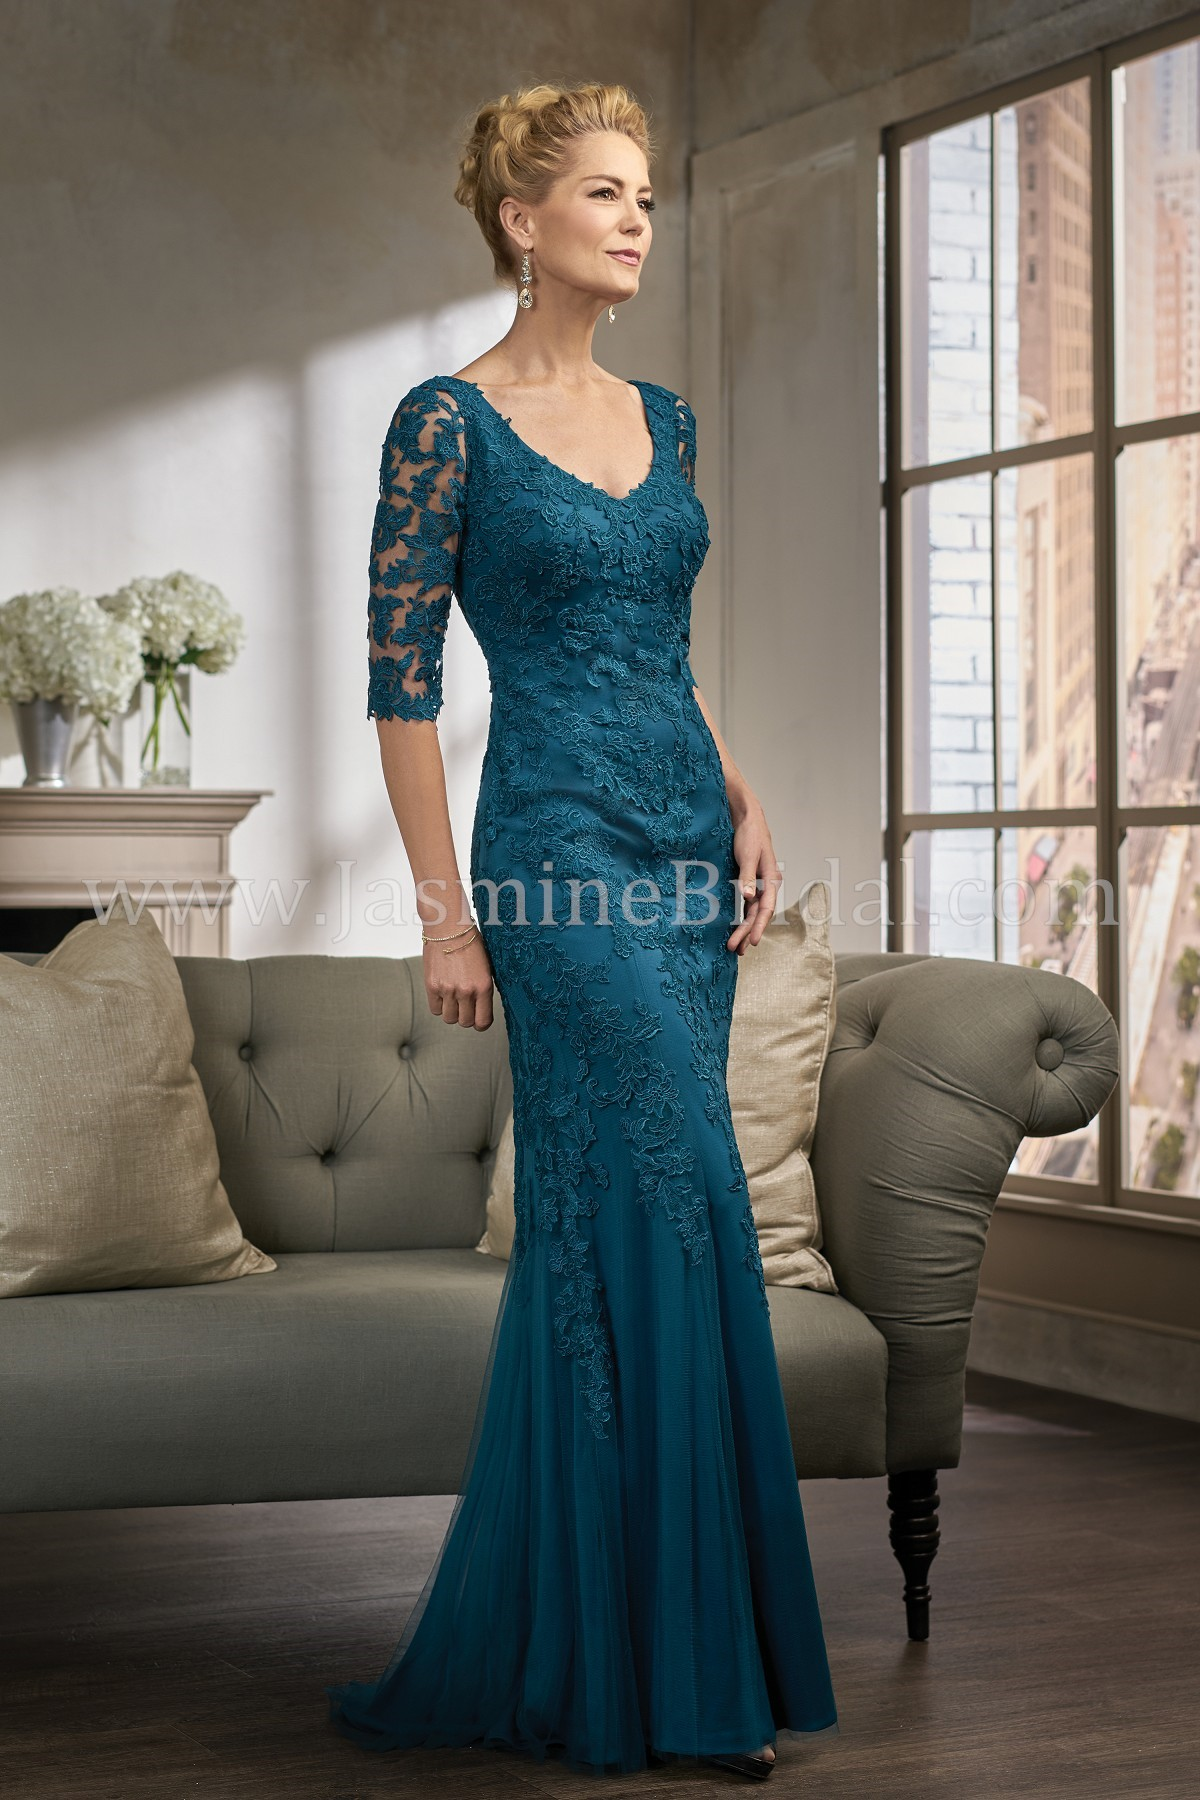 K198007 Long V Neck Lace Amp Netting Mob Dress With Sleeves